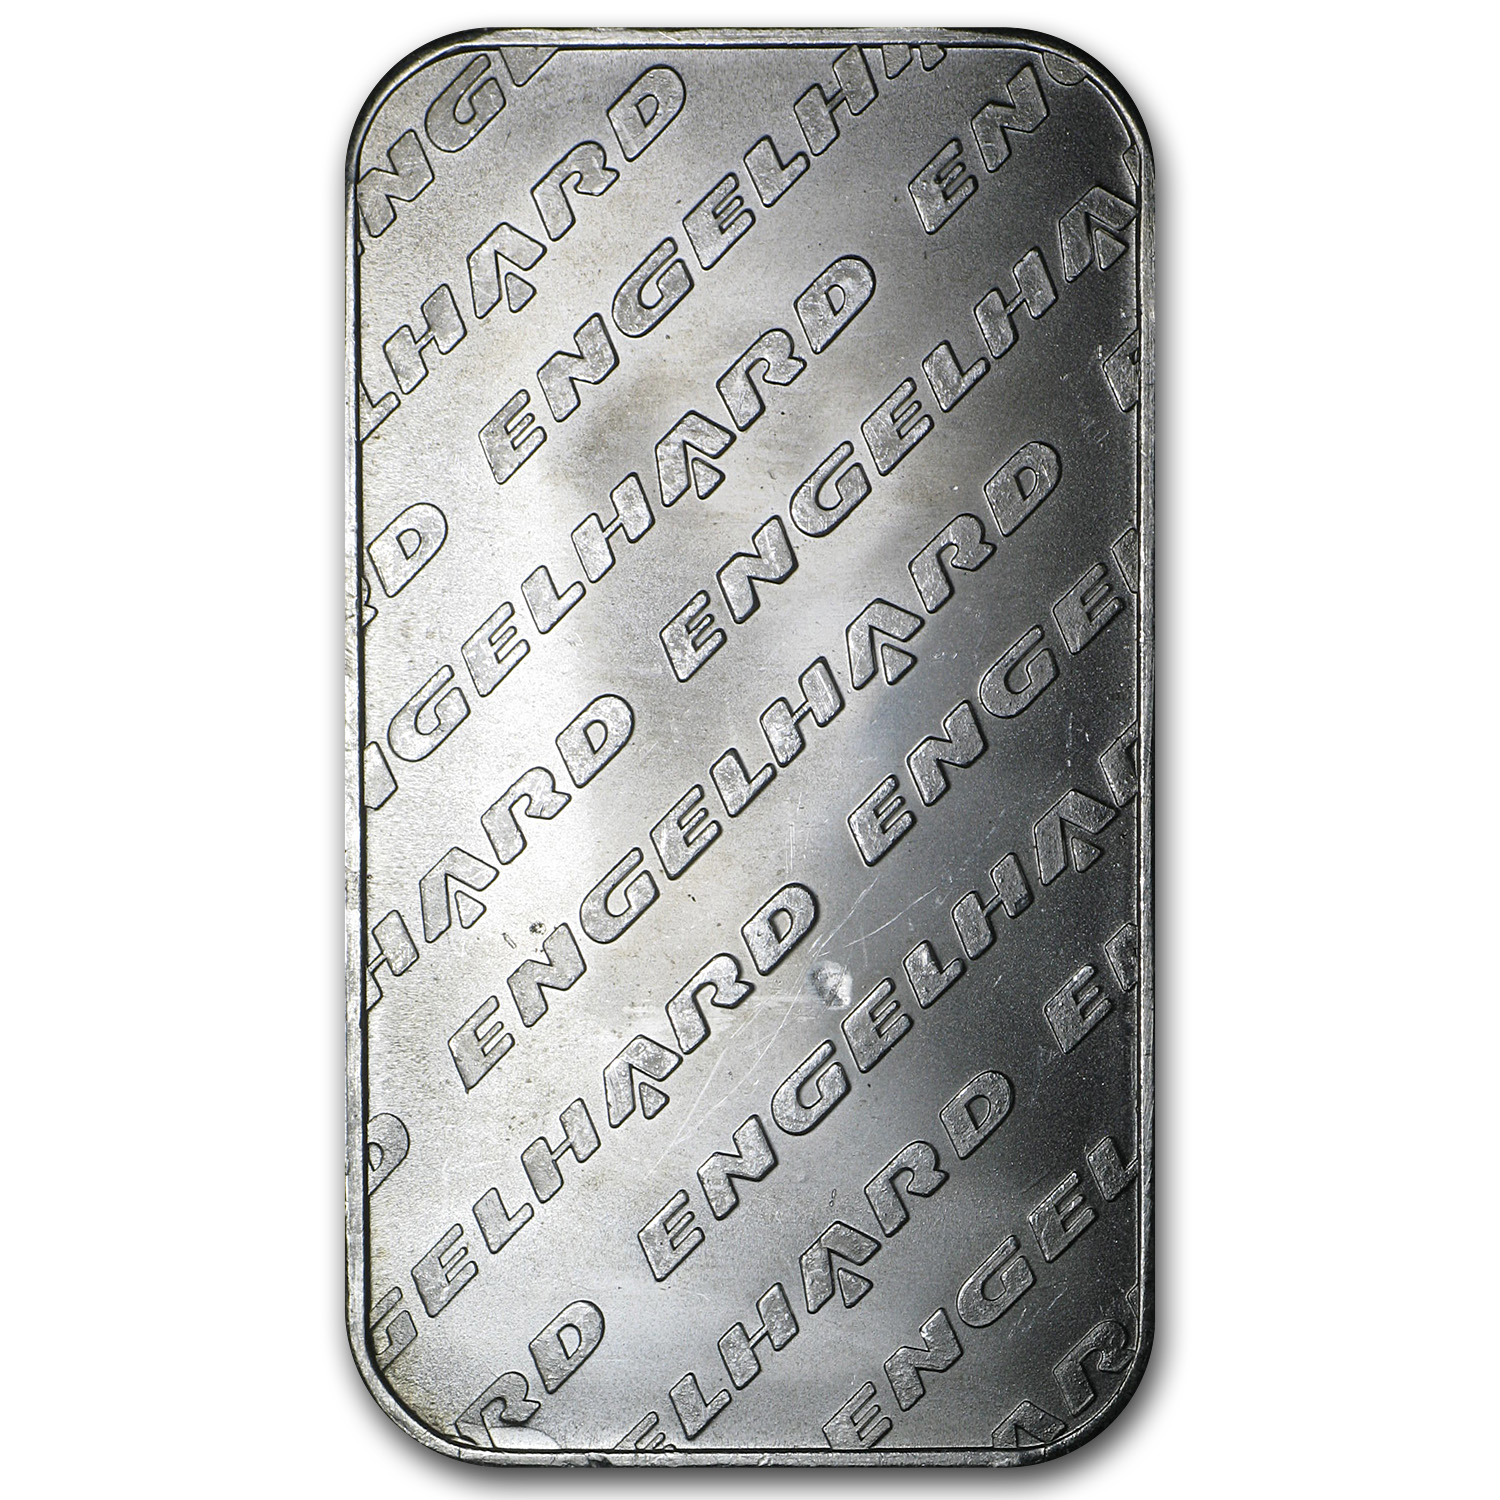 1 oz Silver Bar - Engelhard (Tall/Eagle/Logo)